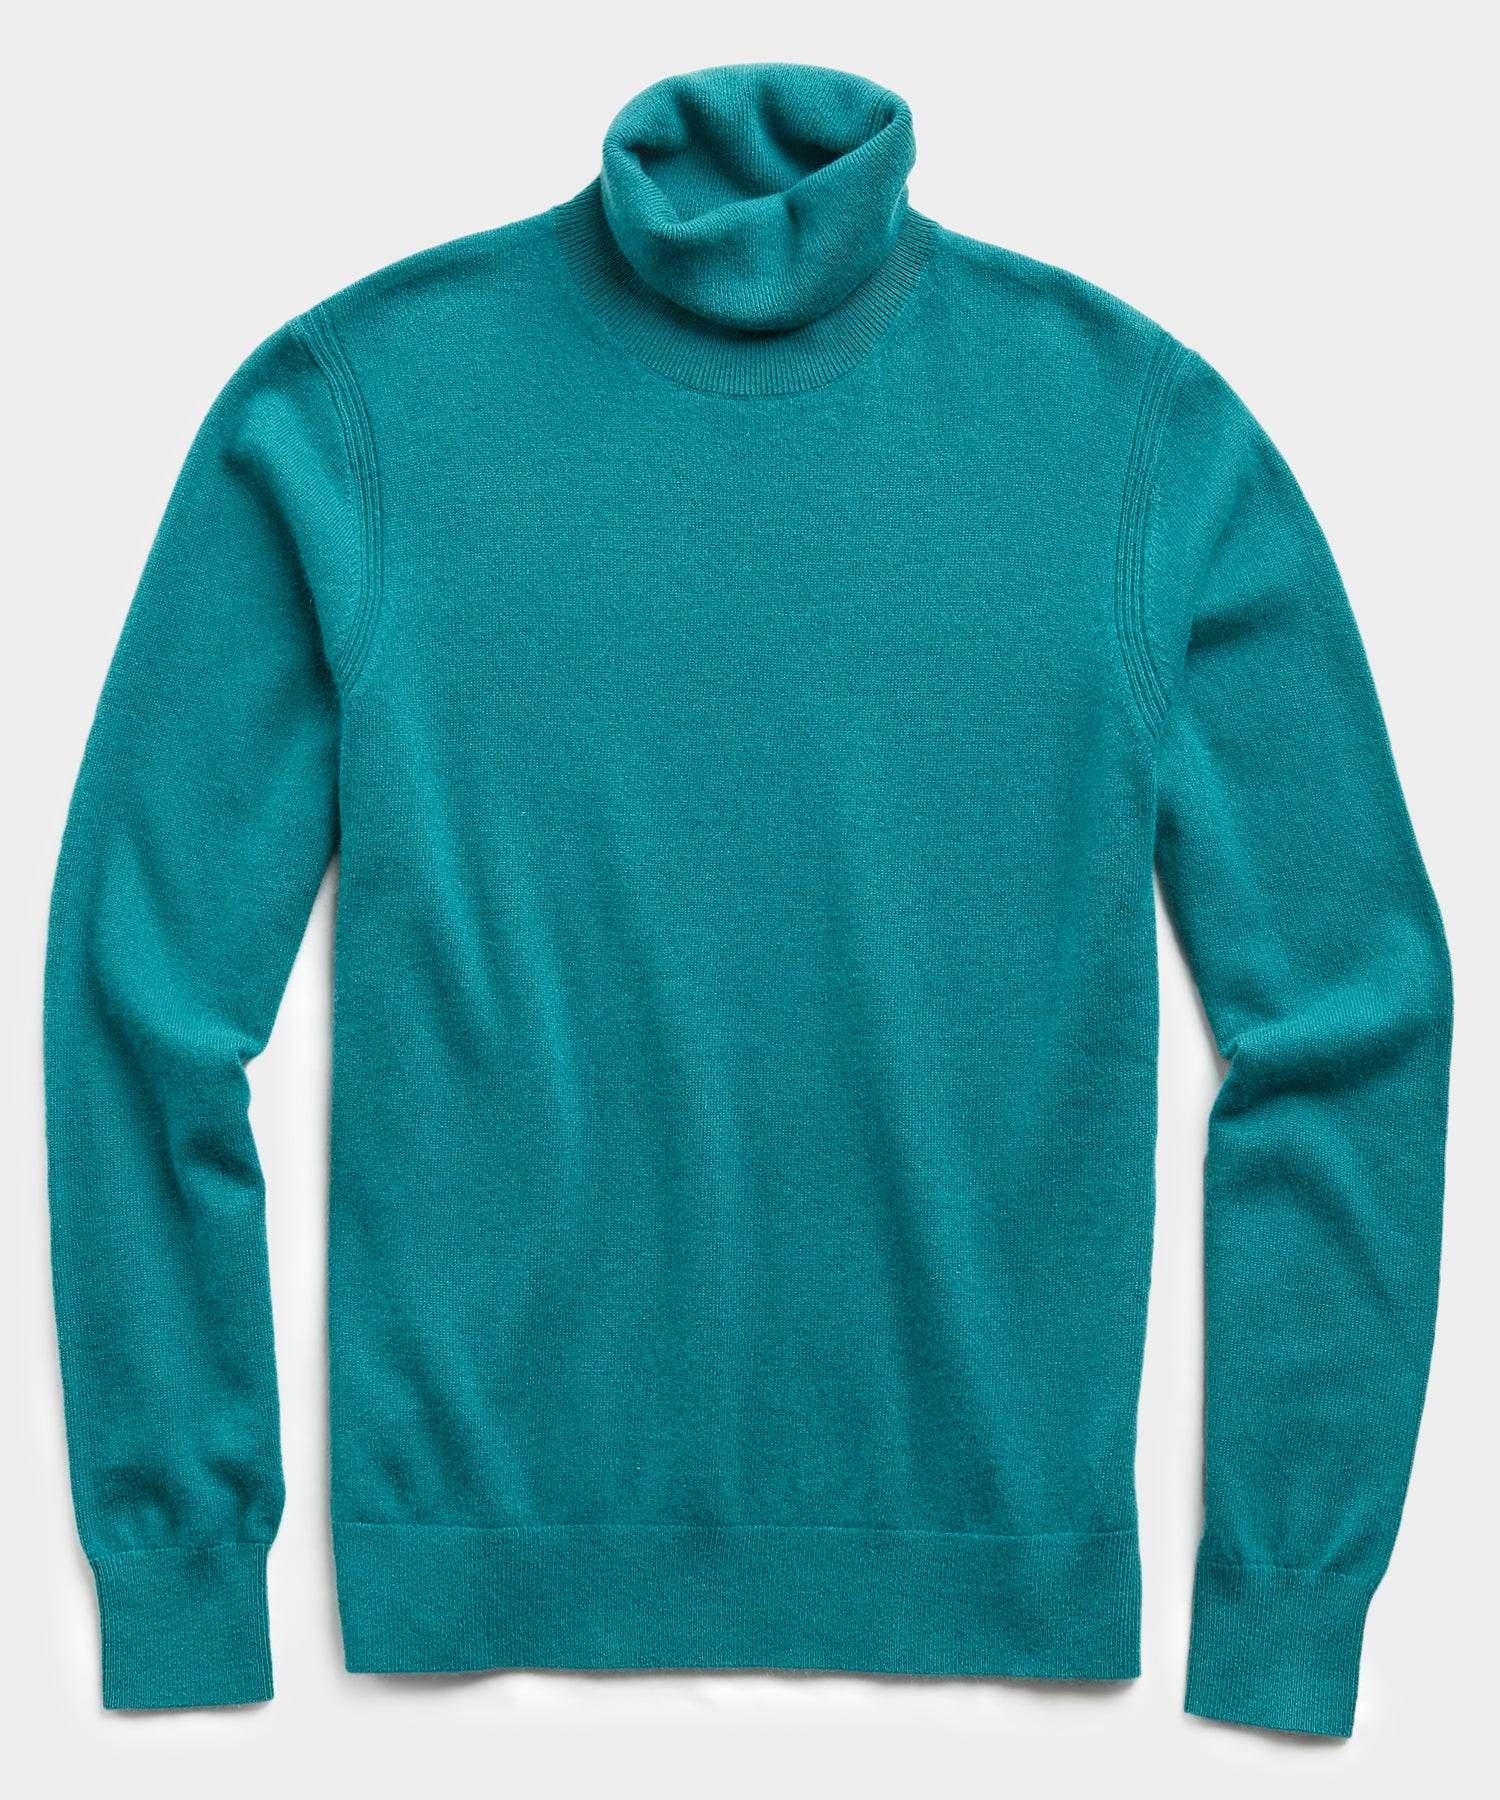 Cashmere Turtleneck in Teal